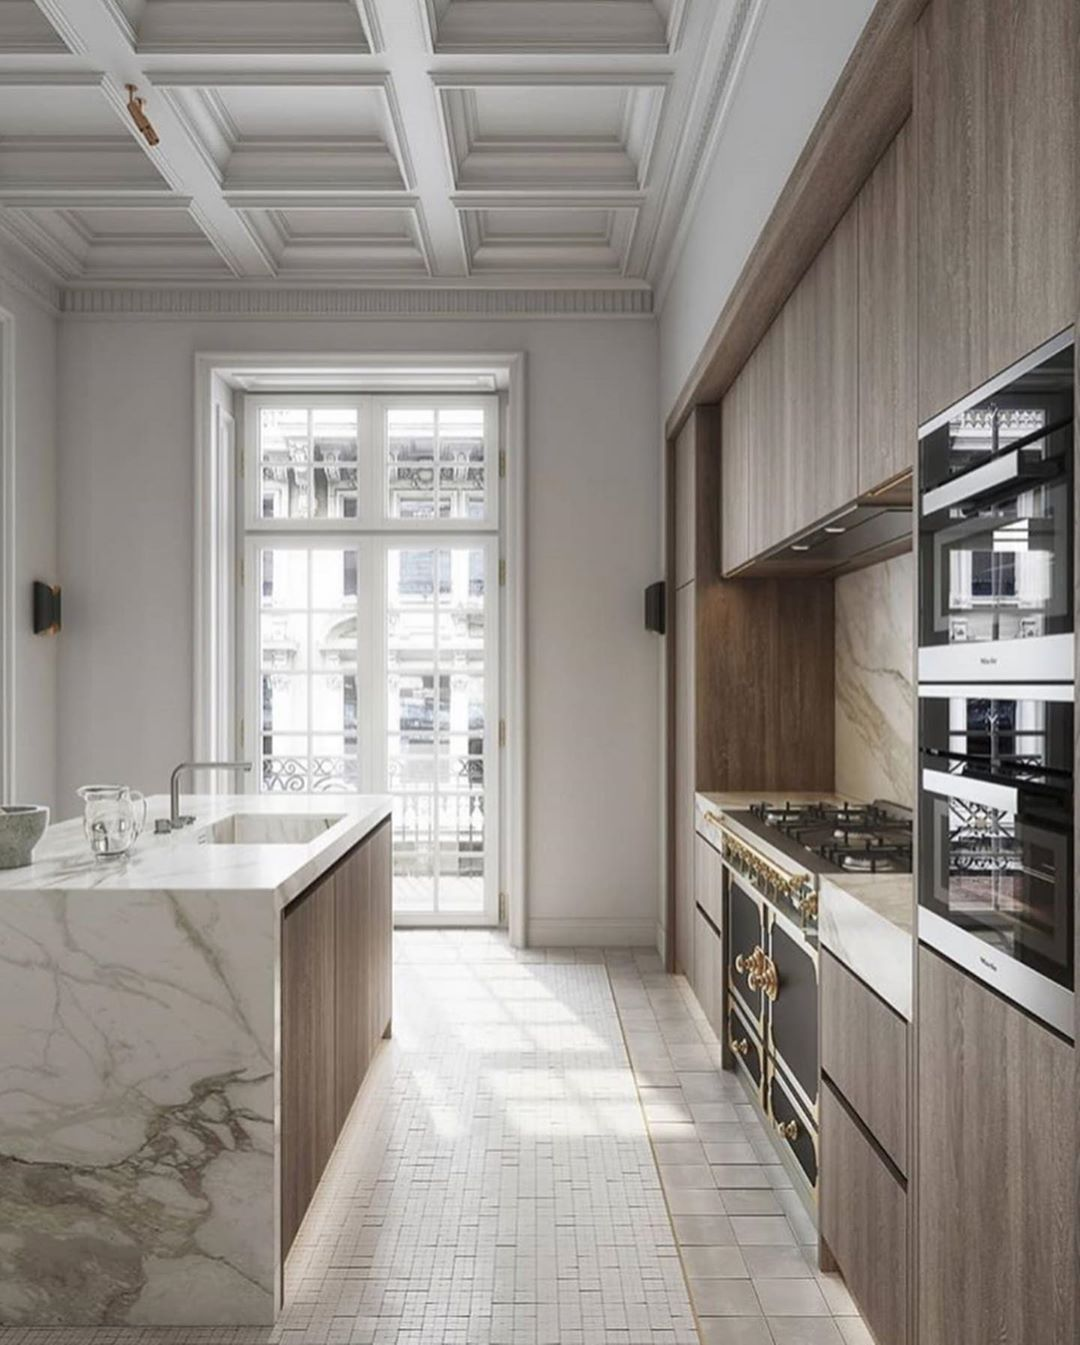 The Most Beautiful Kitchen By Goriyoon Architecture Via